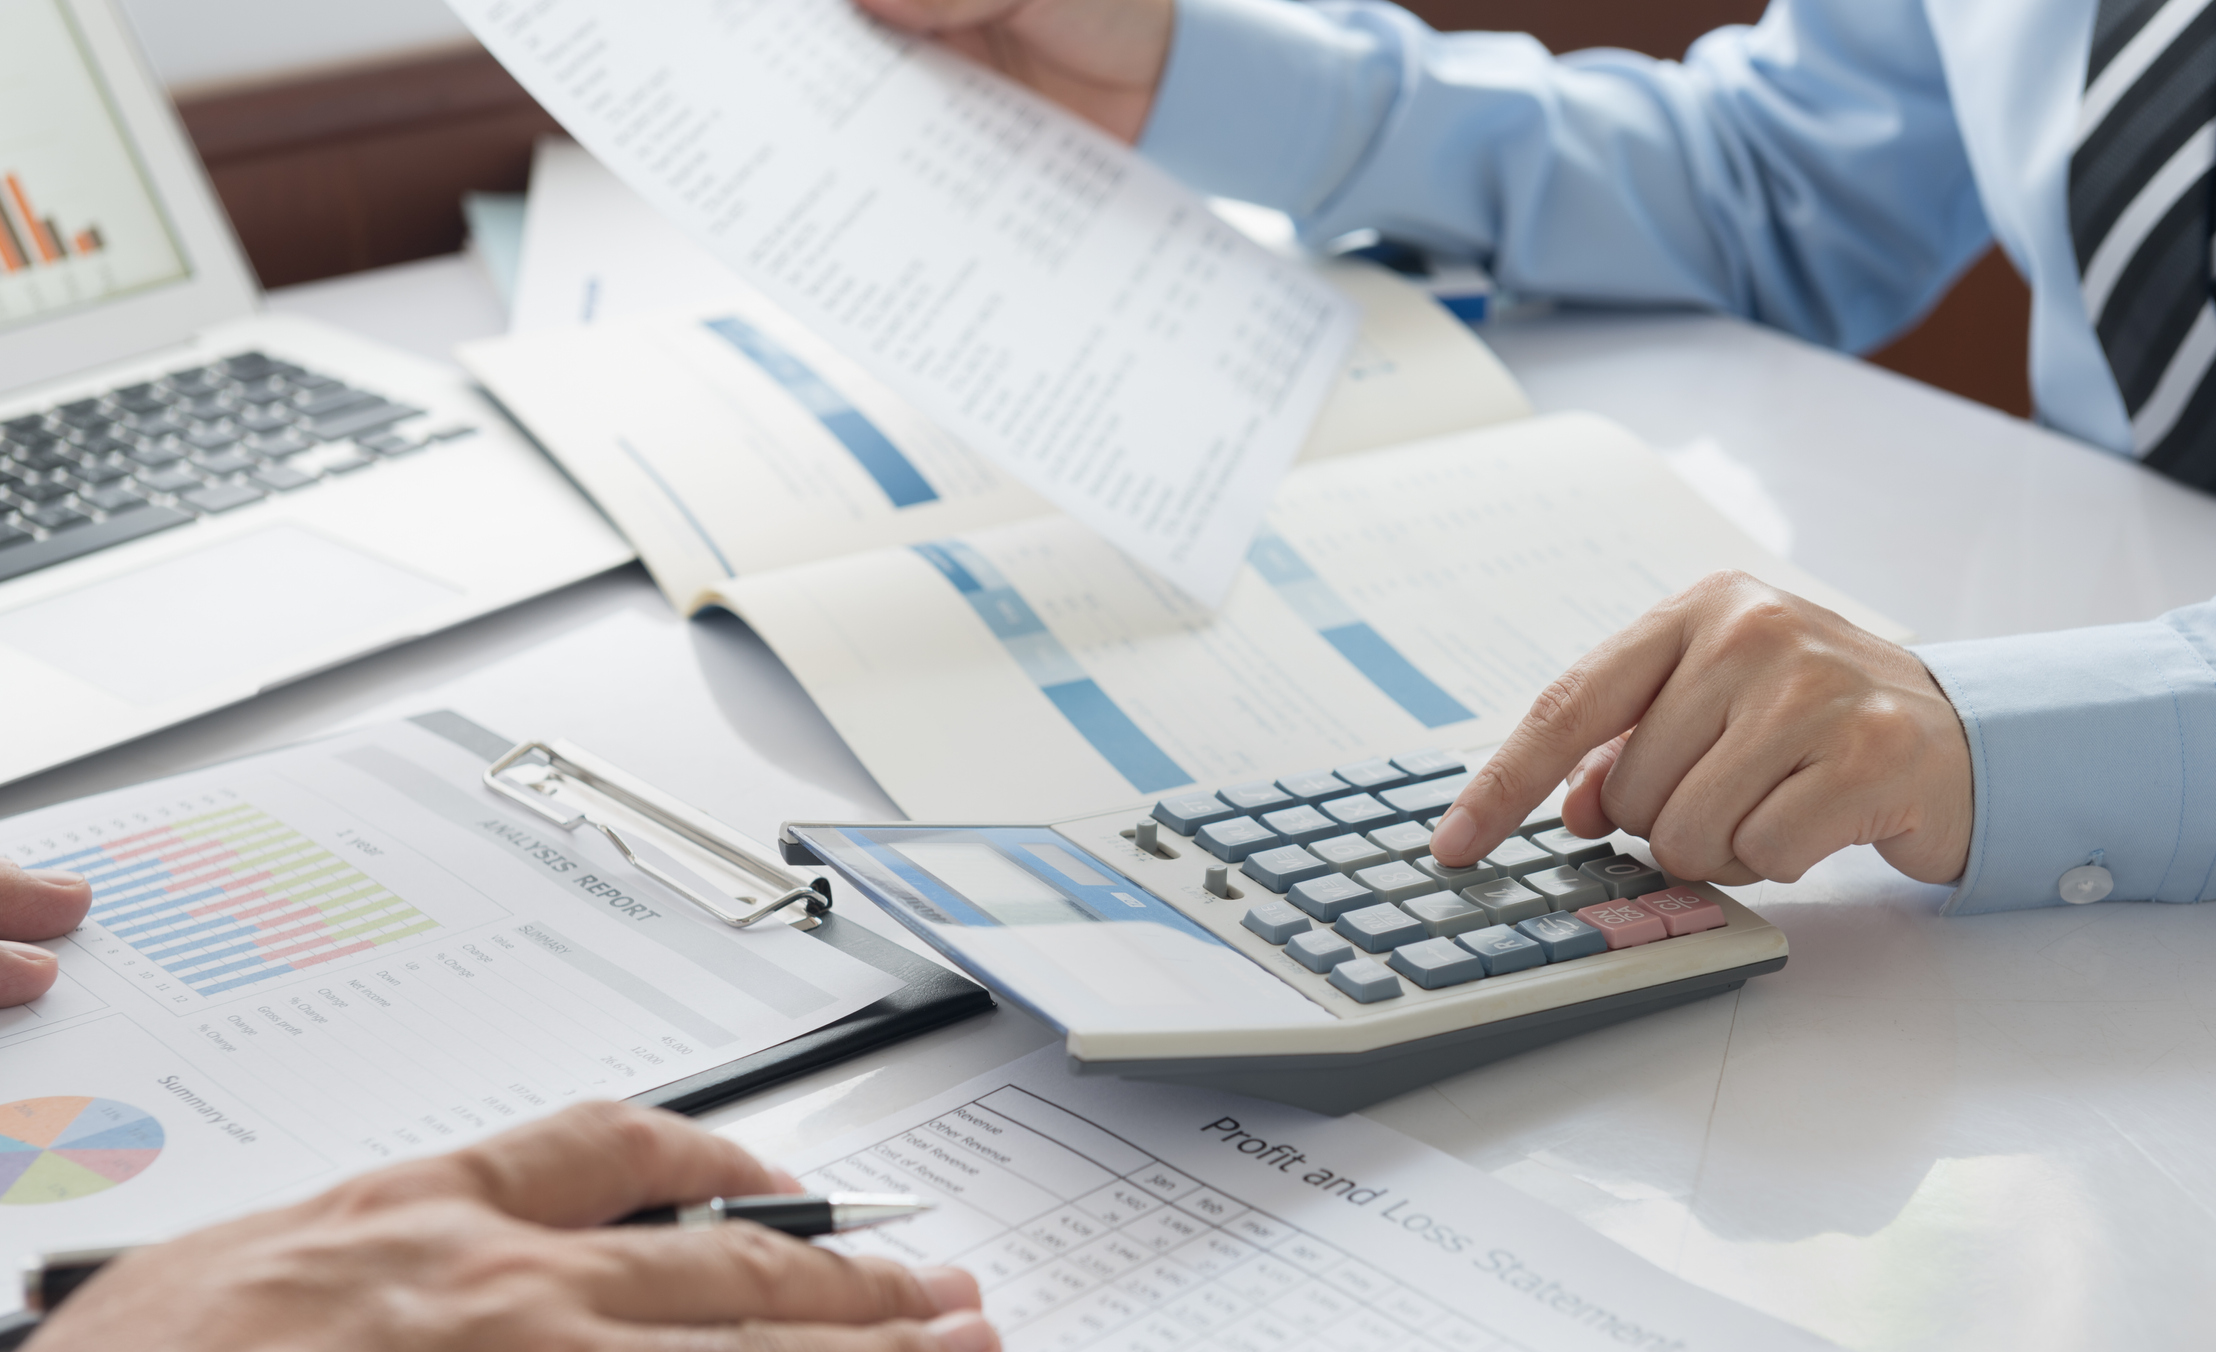 raleigh-nc-cfo-services-11-reasons-why-your-company-needs-cfo-services